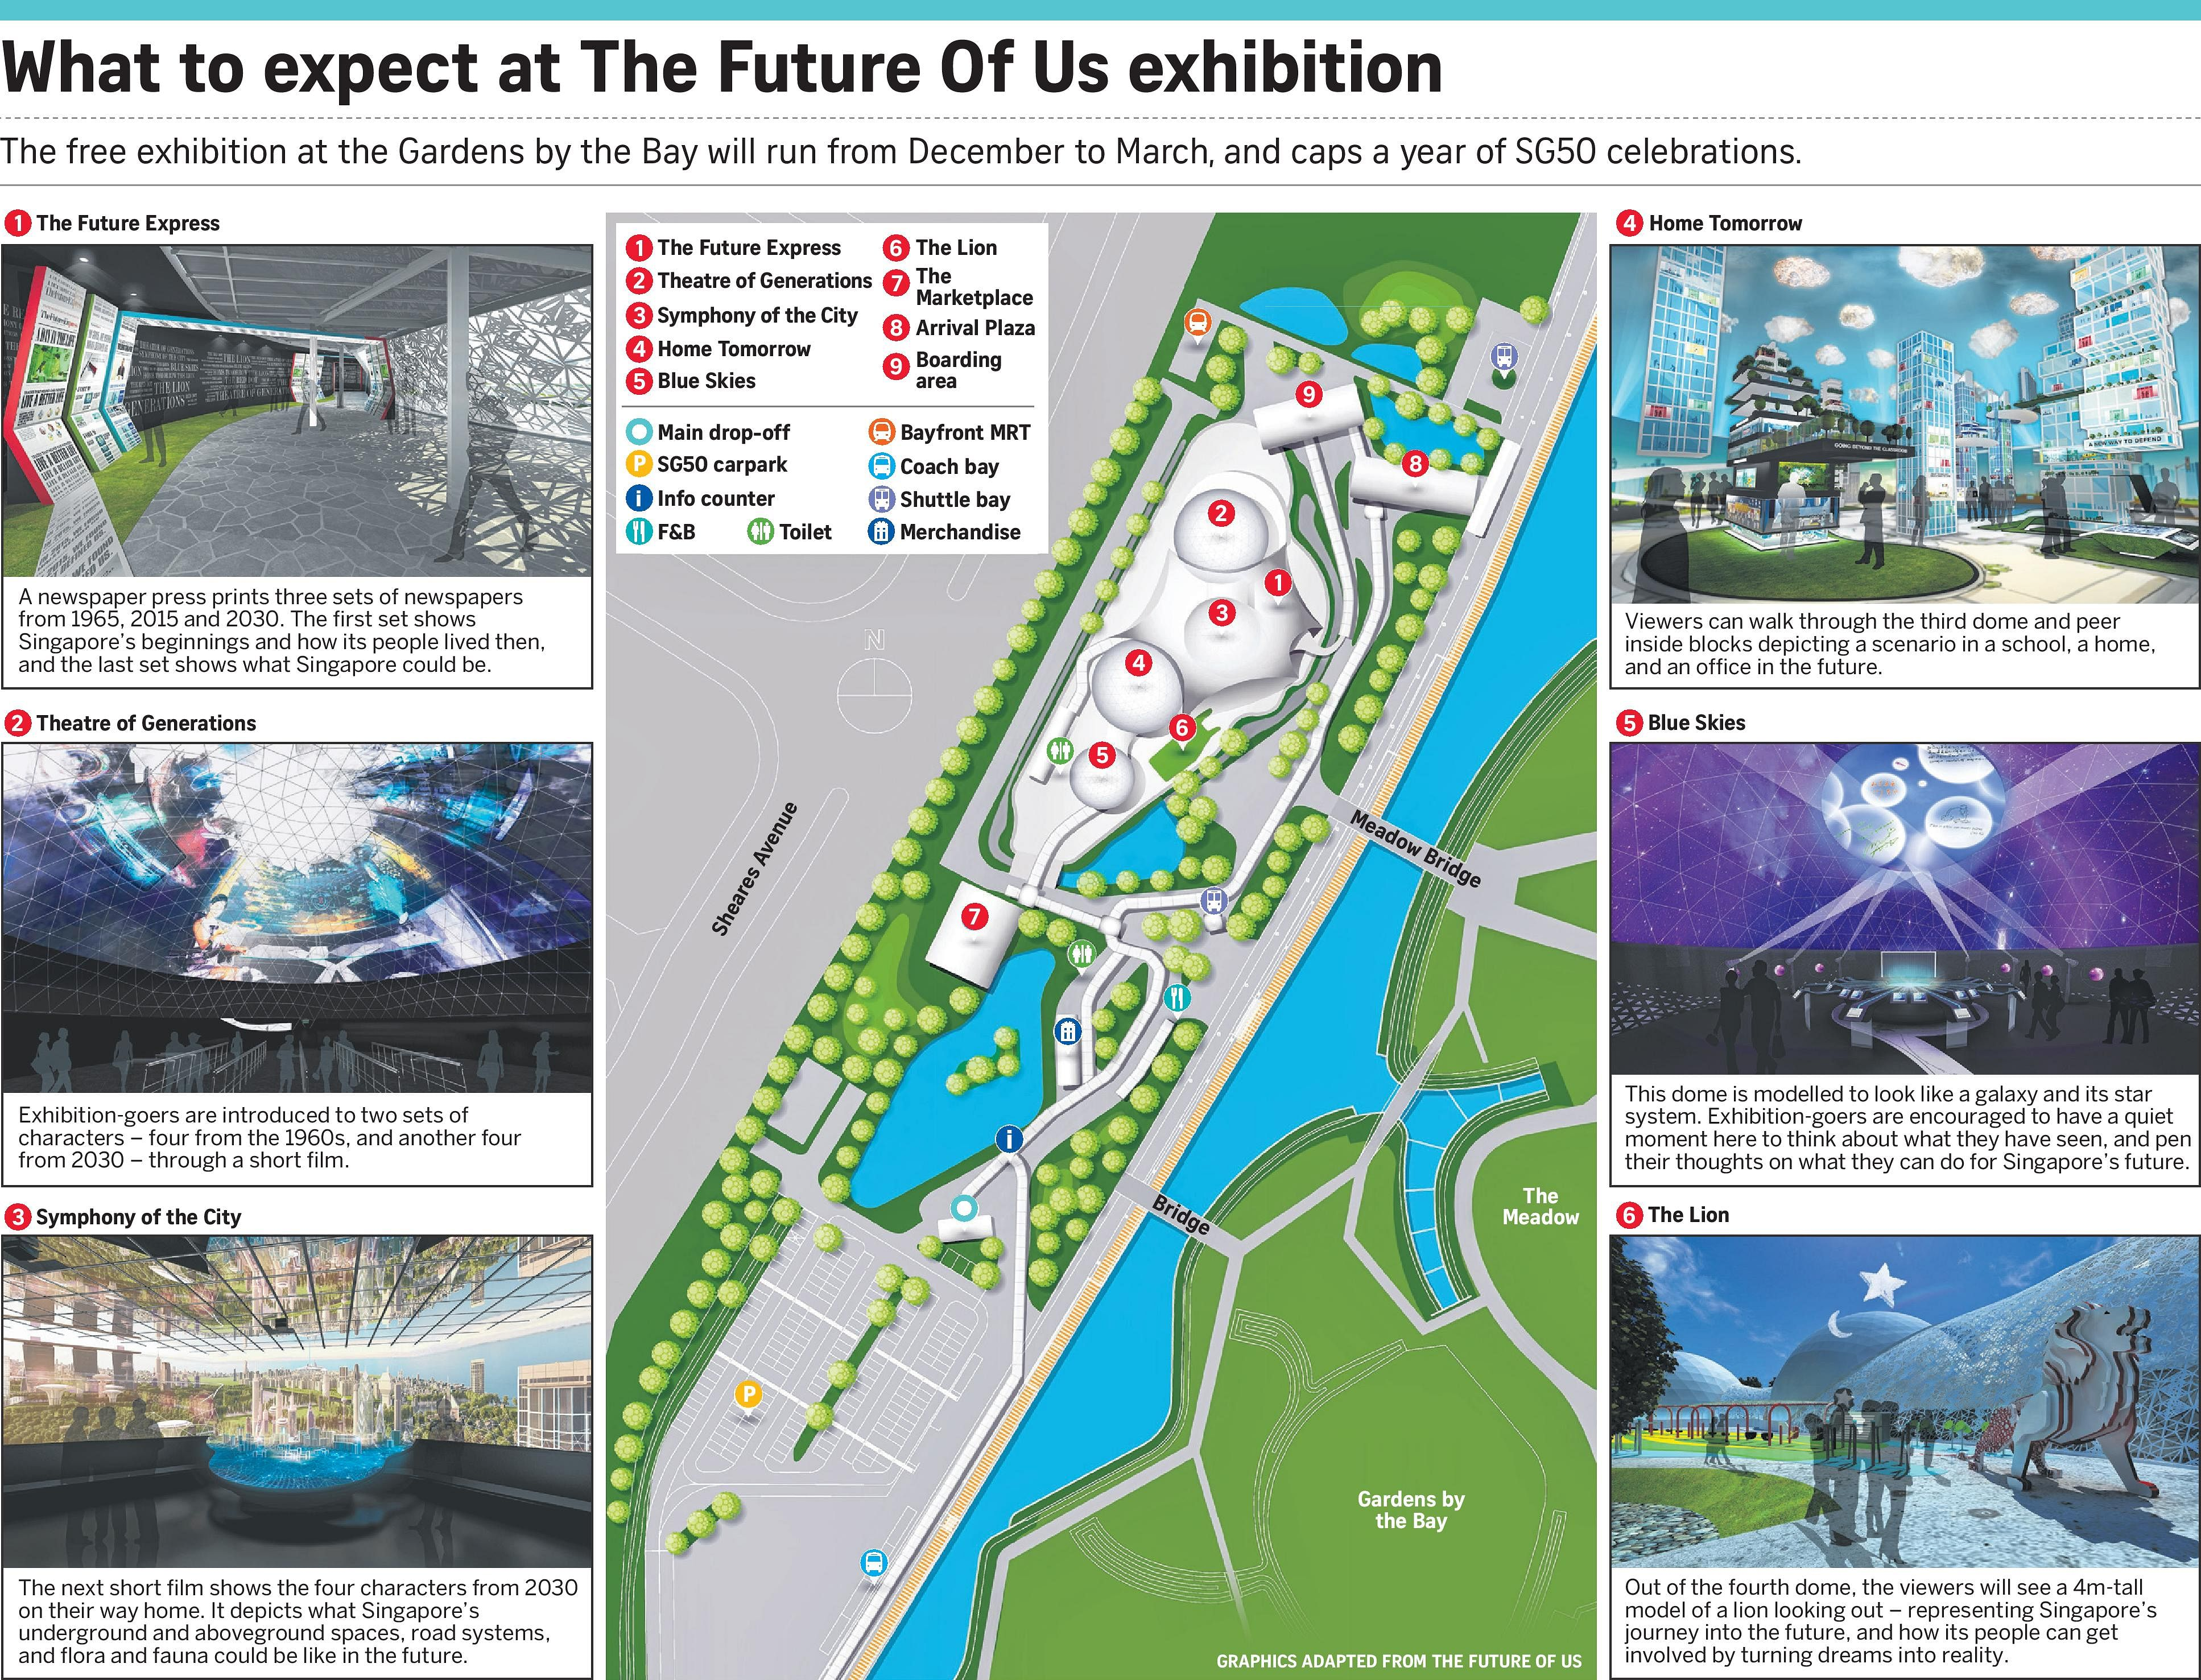 What to expect at the Future of Us Exhibition